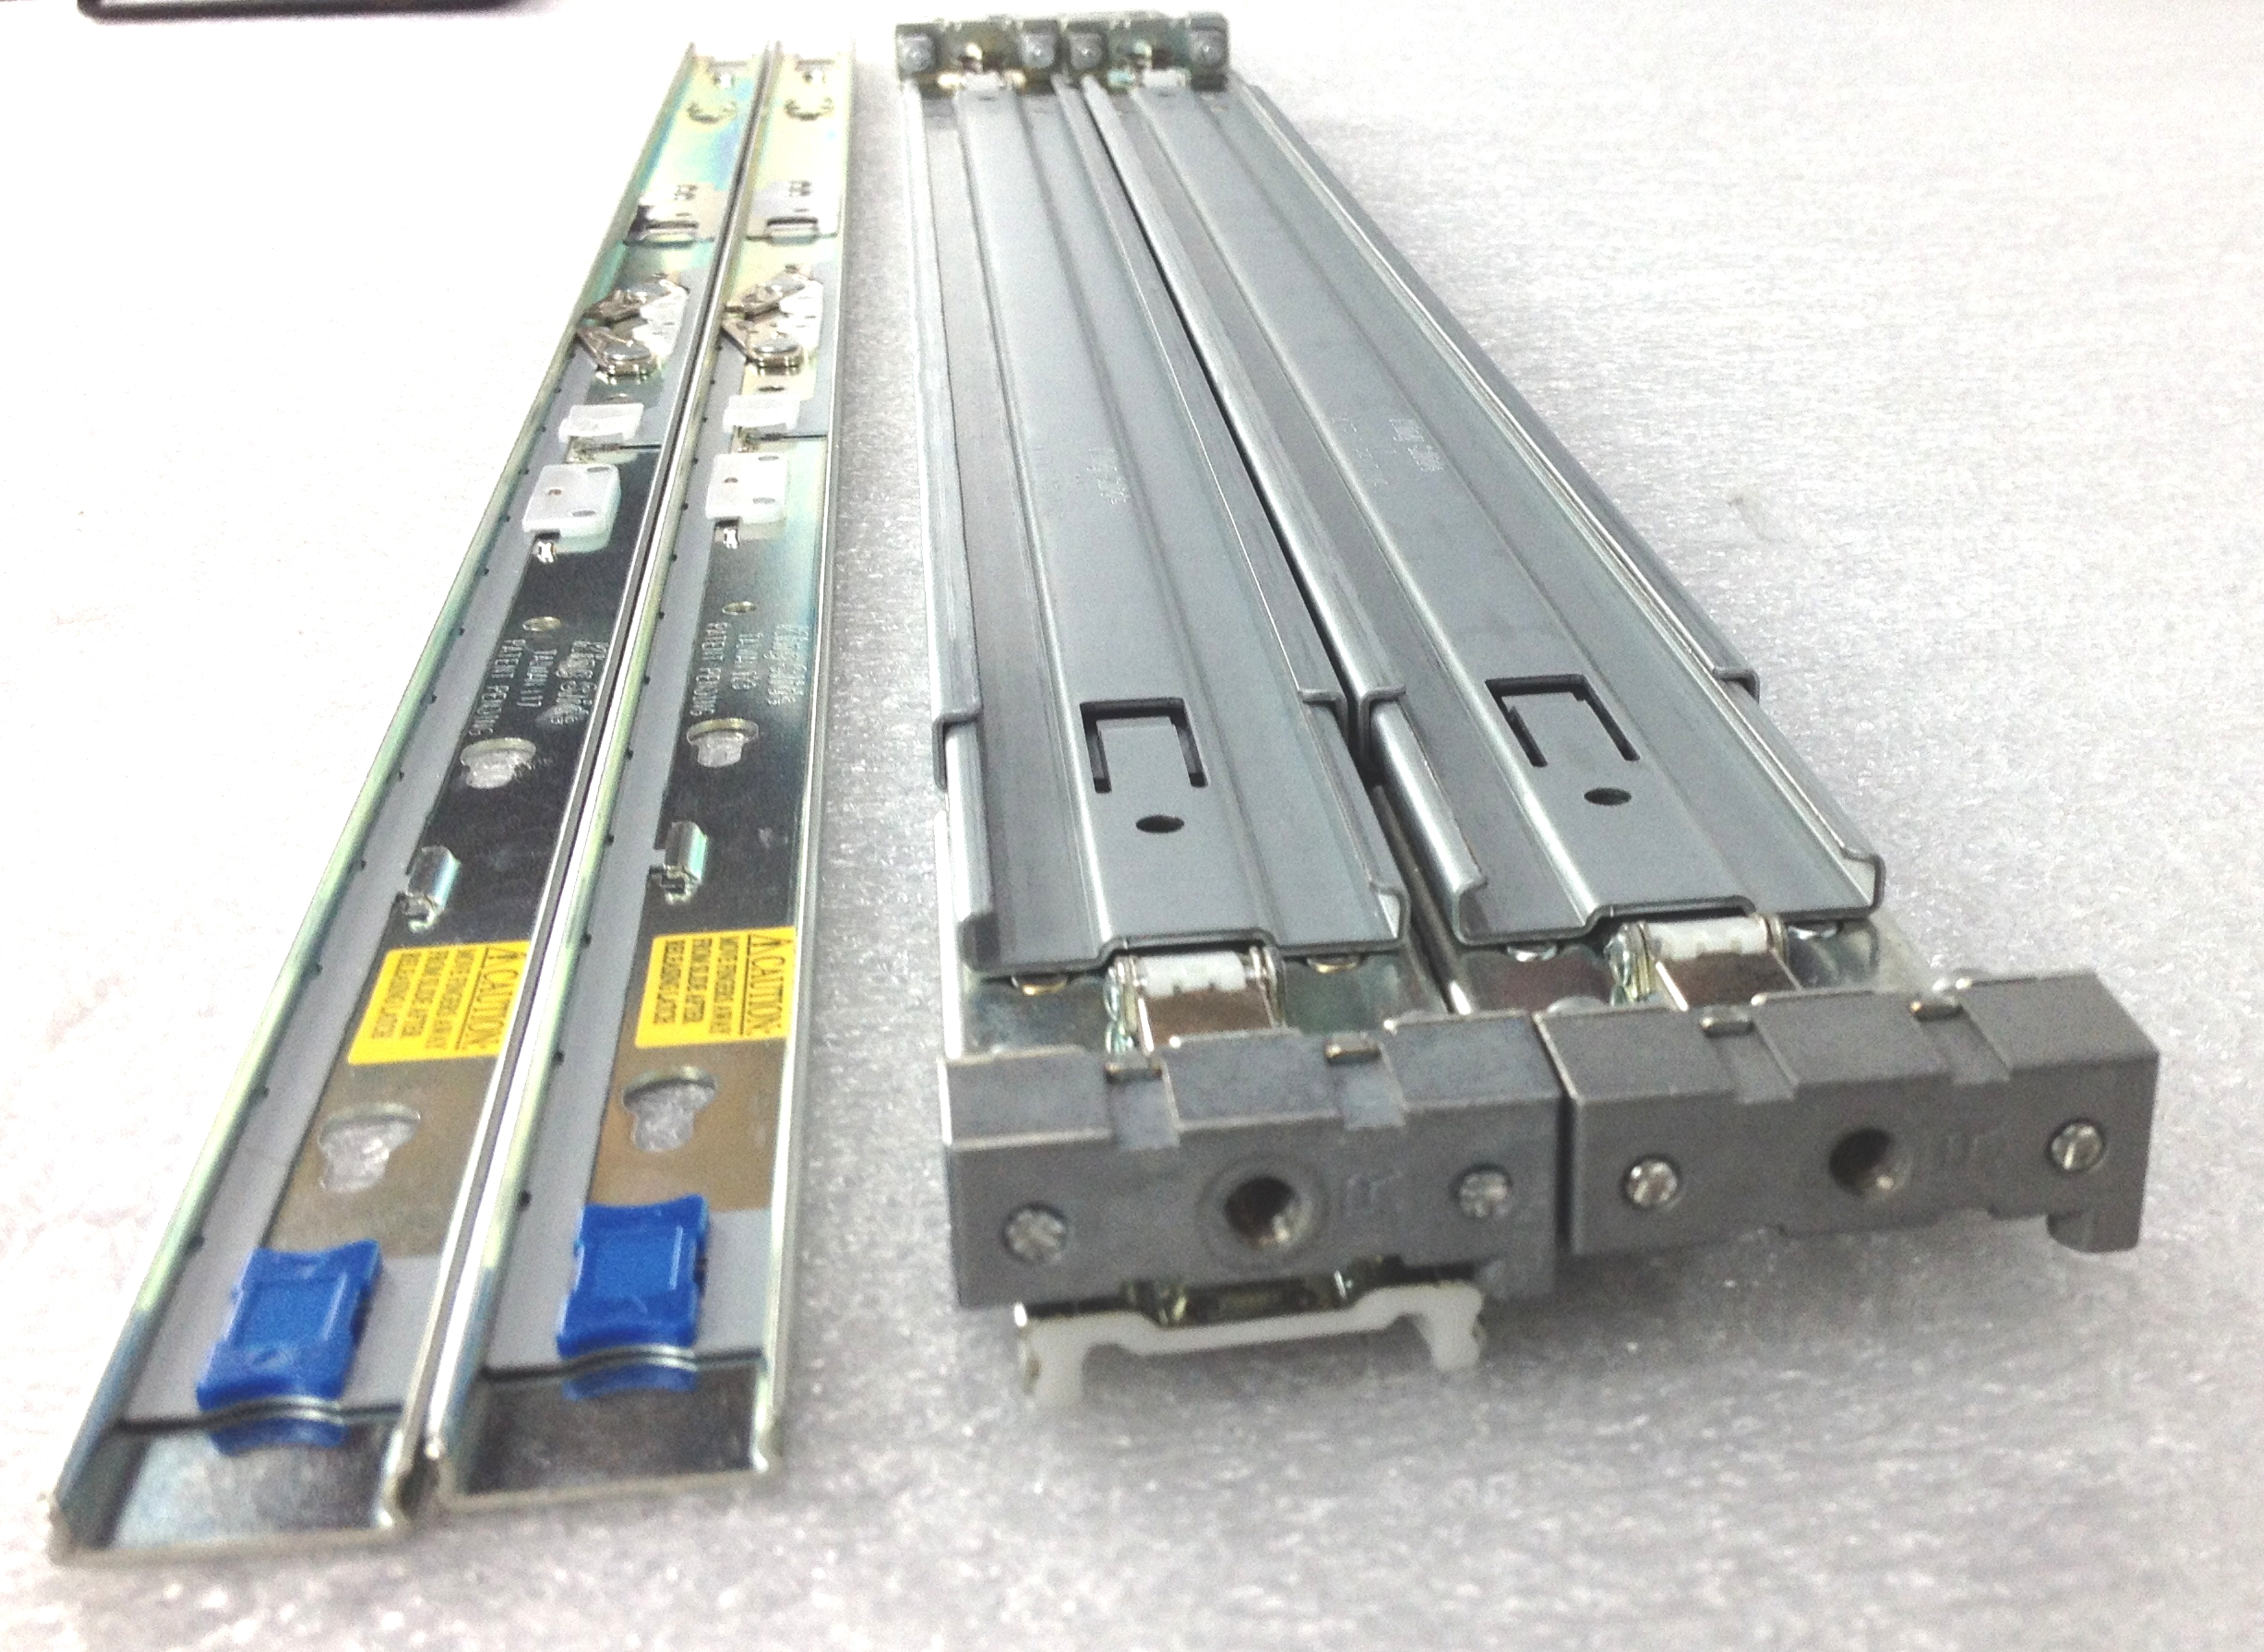 Cisco UCS C200 M2 C210 M2 1U Server Rail Kit (R2XX-G31032RAIL)